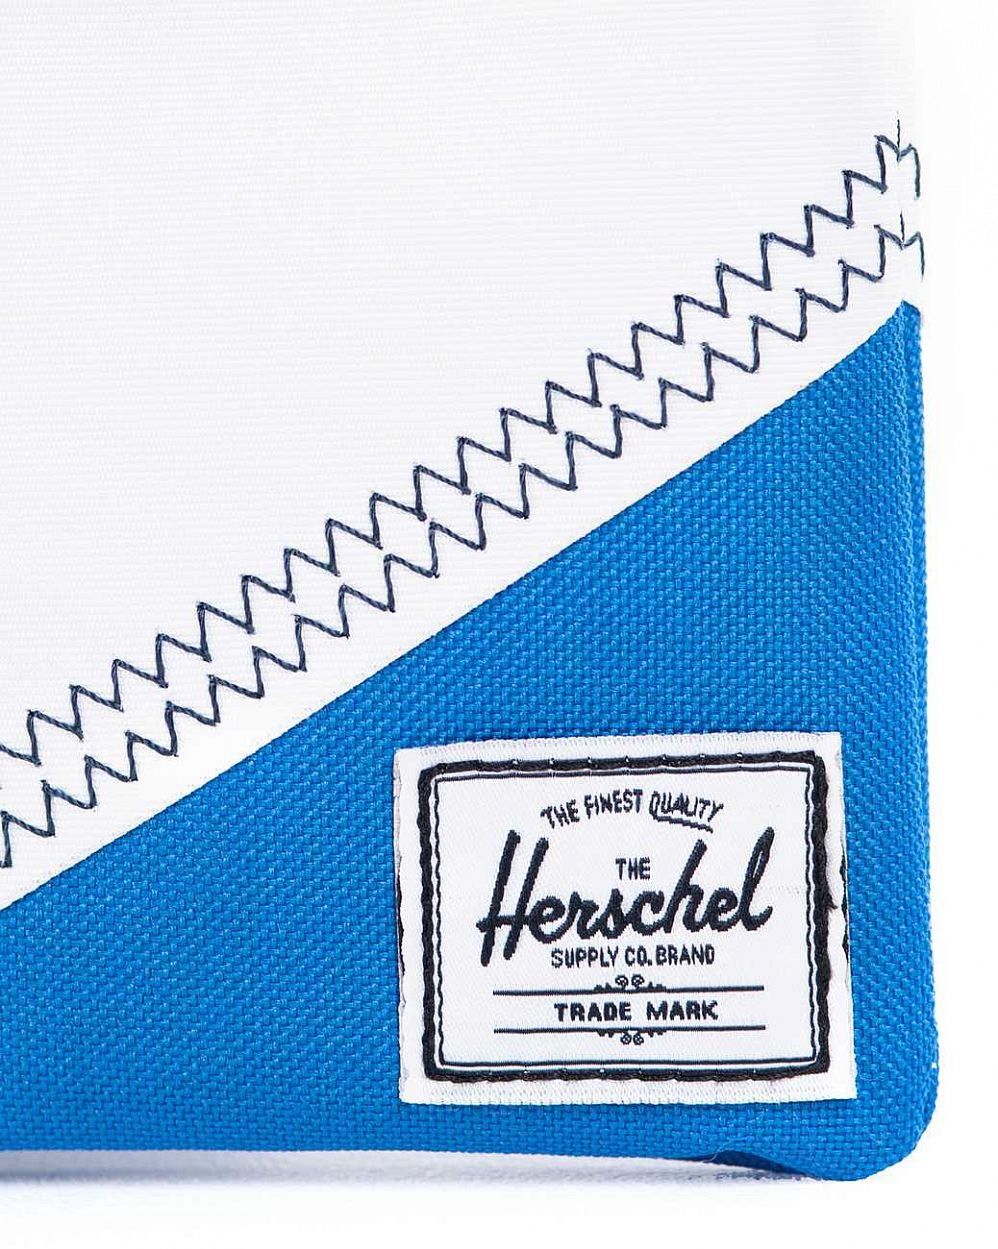 Папка Herchel Field Pouch Medium White Yellow Regatta интернет-магазин в Москве